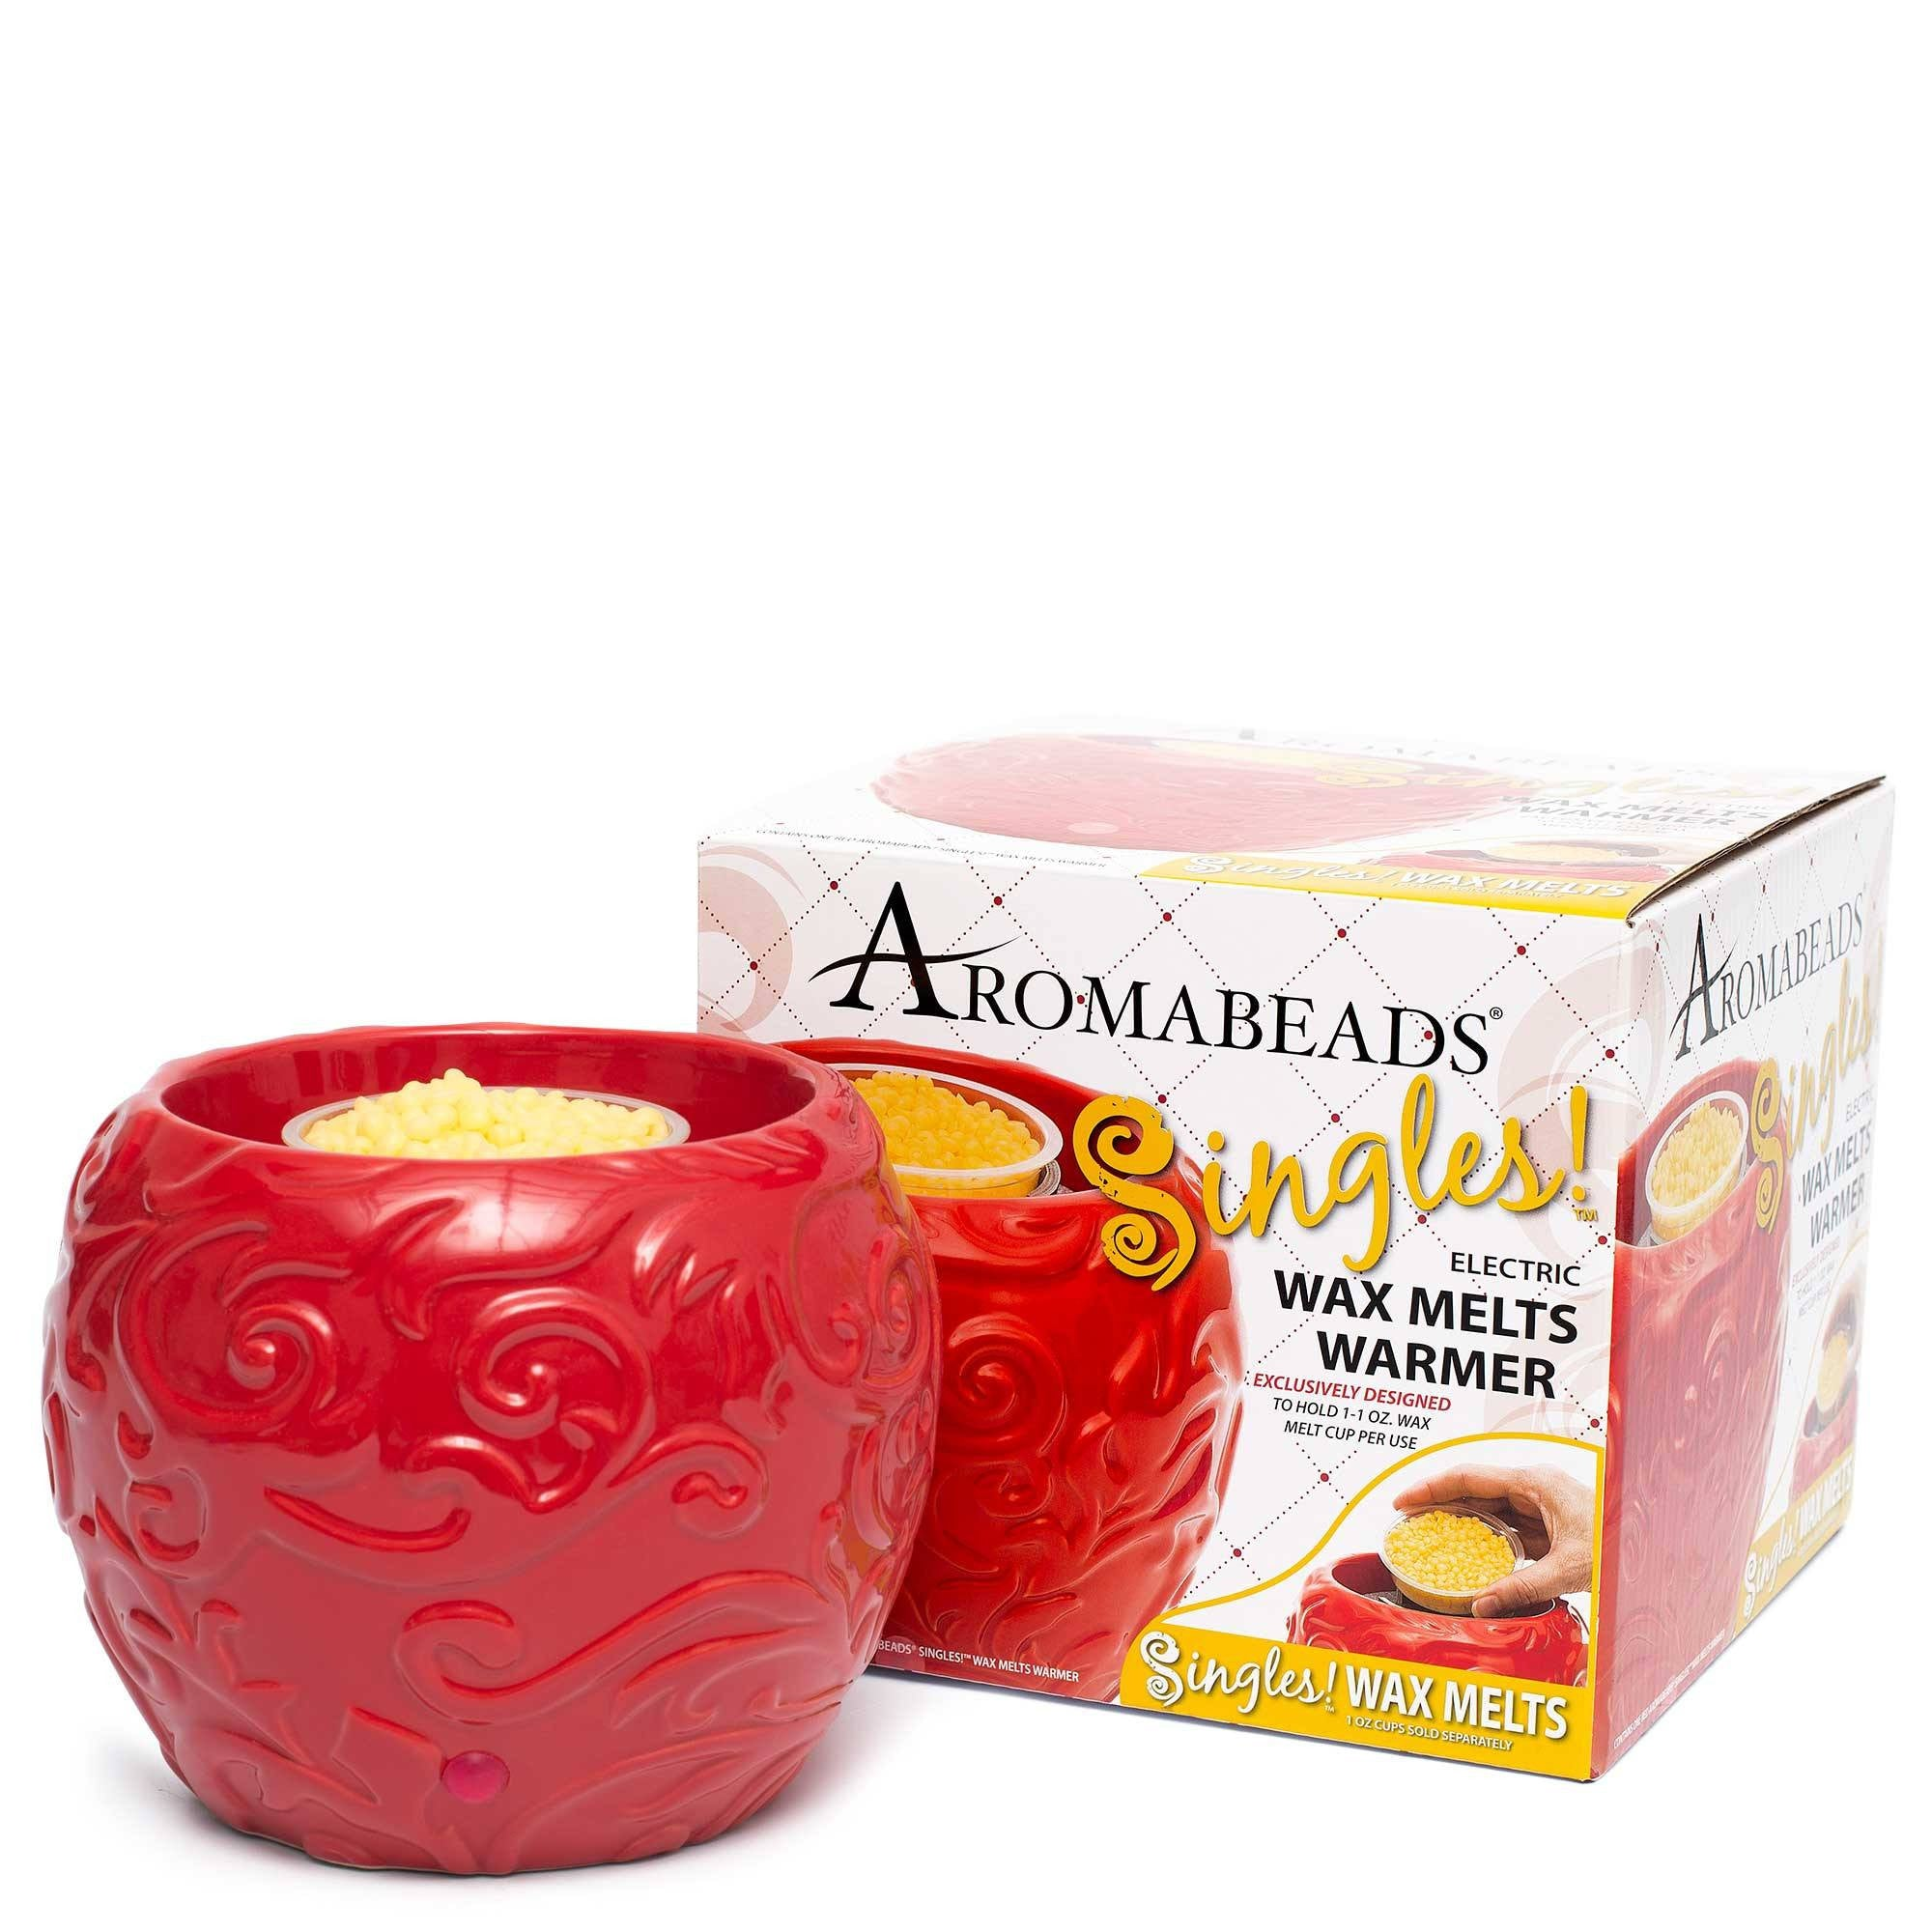 Aromabeads Singles Sandy Beach Scented Wax Melts - Candlemart.com - 3